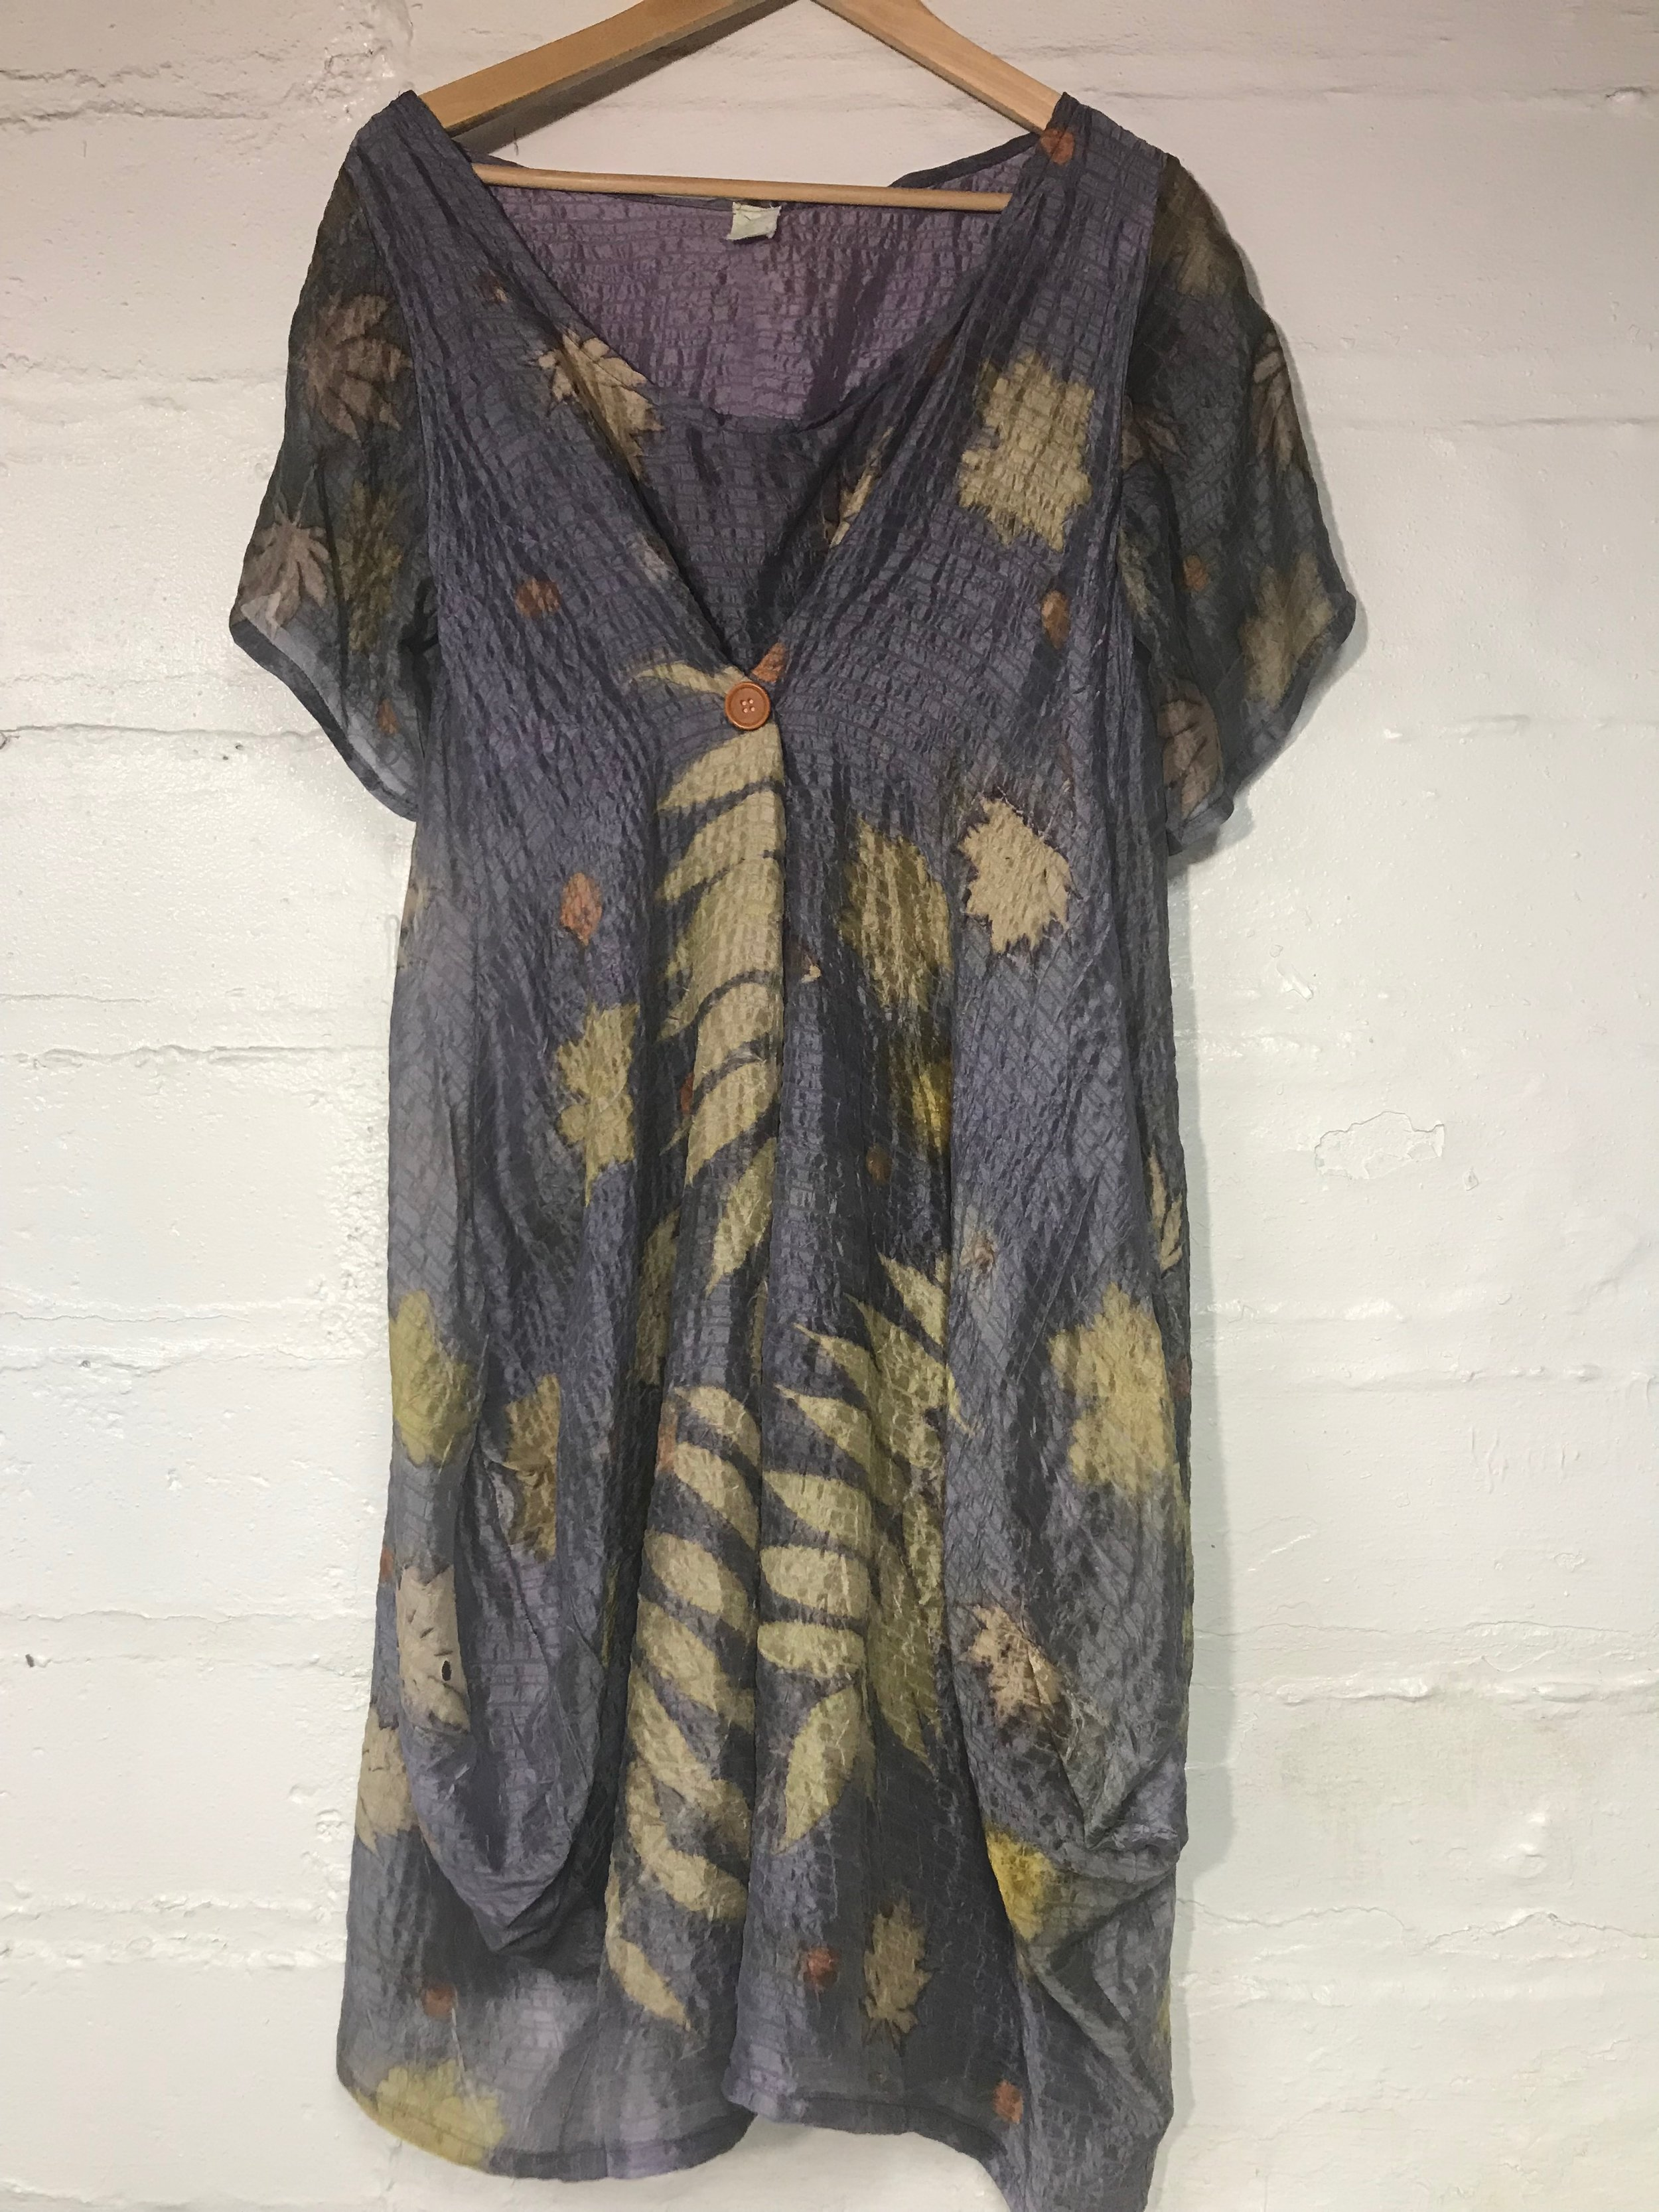 Silk dyed in logwood and printed with  various local leaves.